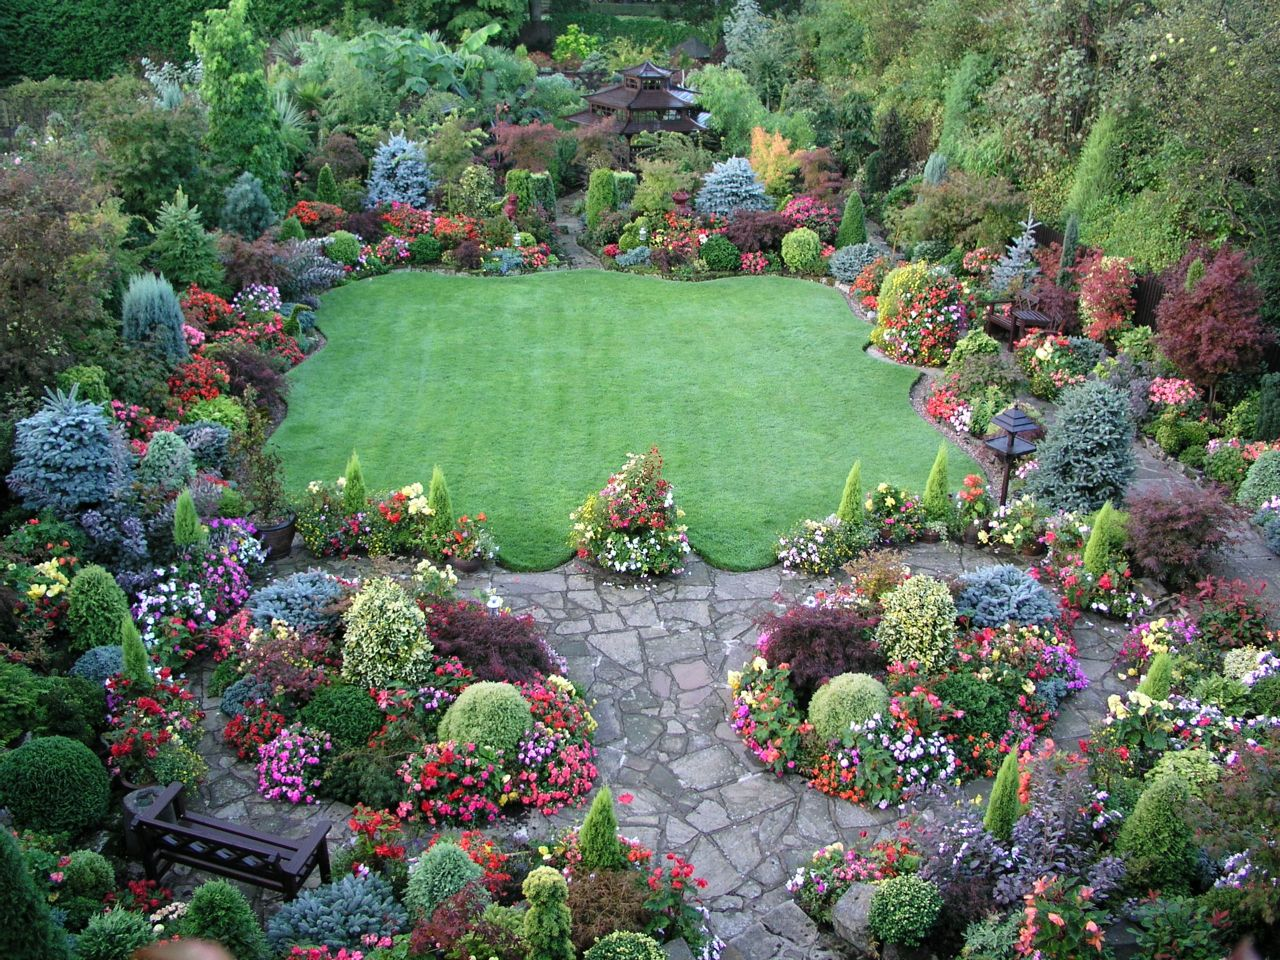 Conifer Garden Ideas sprucebuds image Find This Pin And More On Garden Flowers